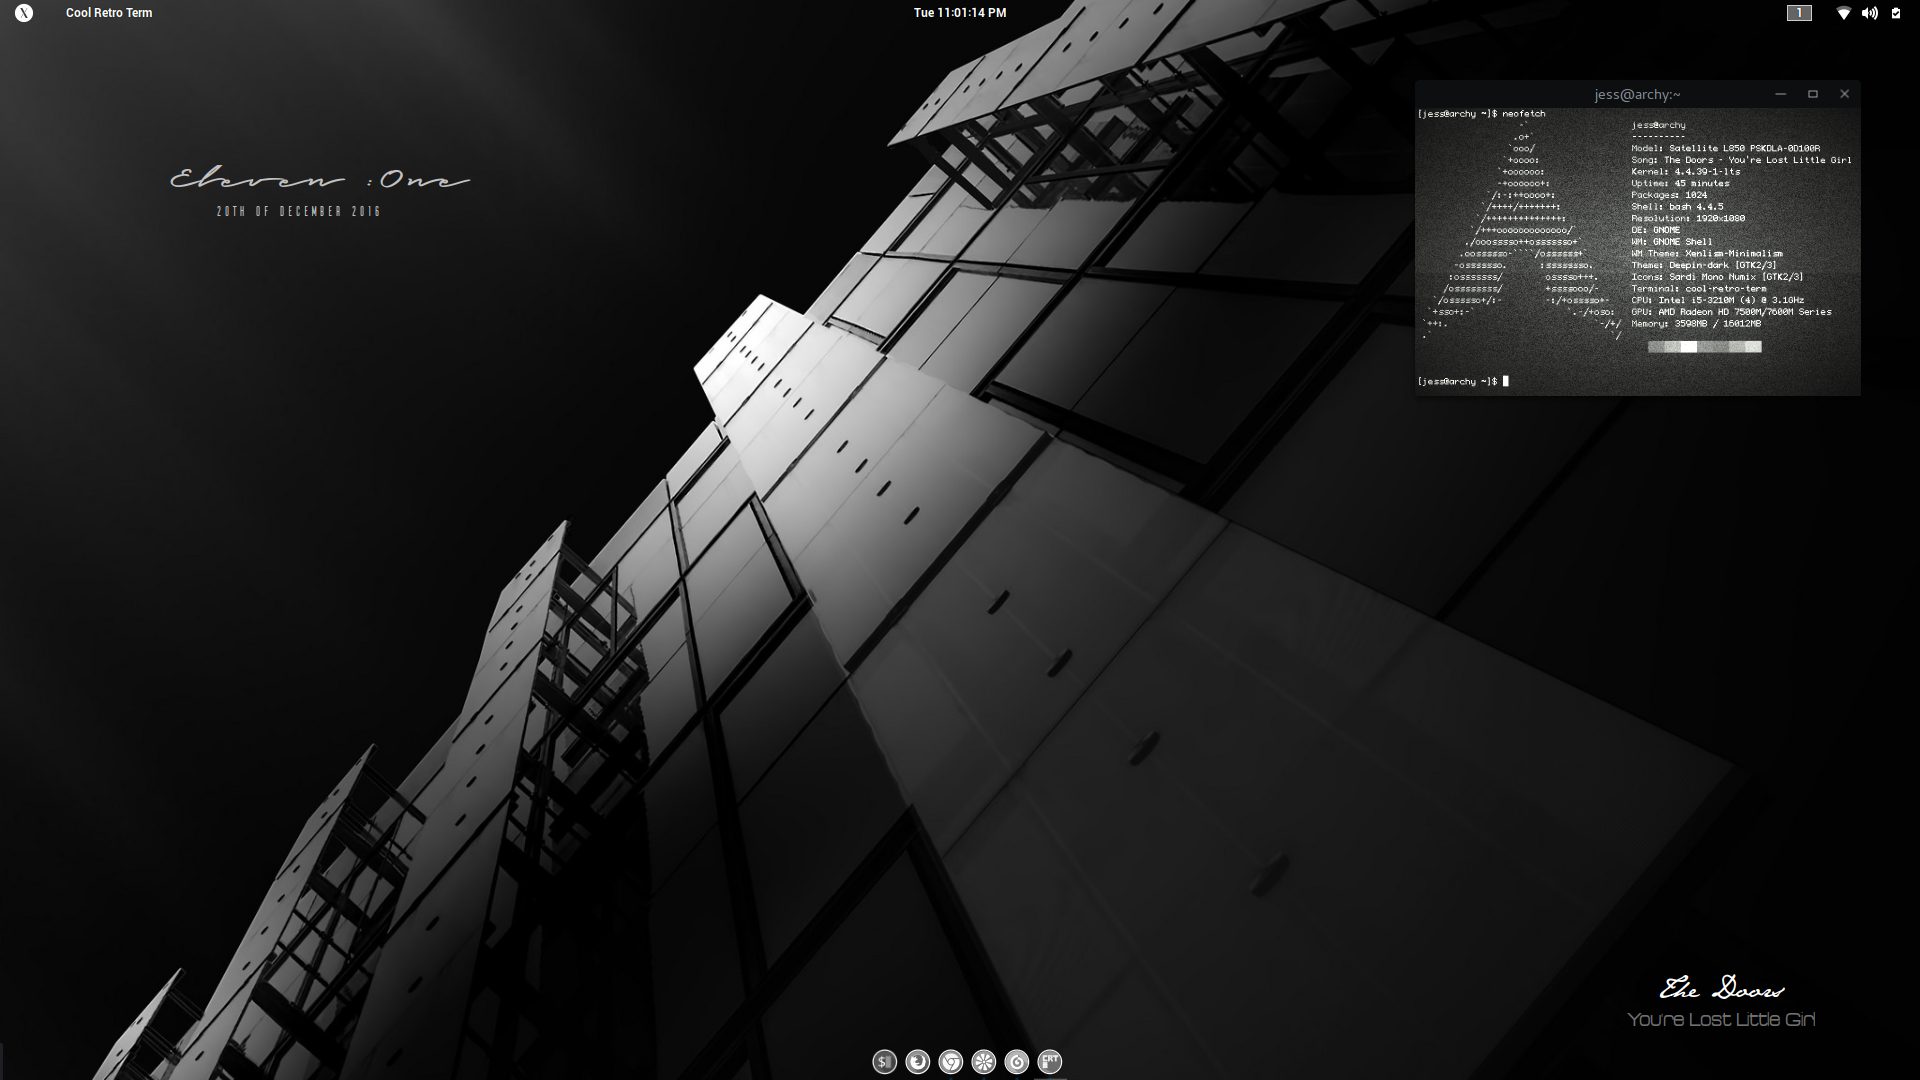 The Monochrome Arch Desktop